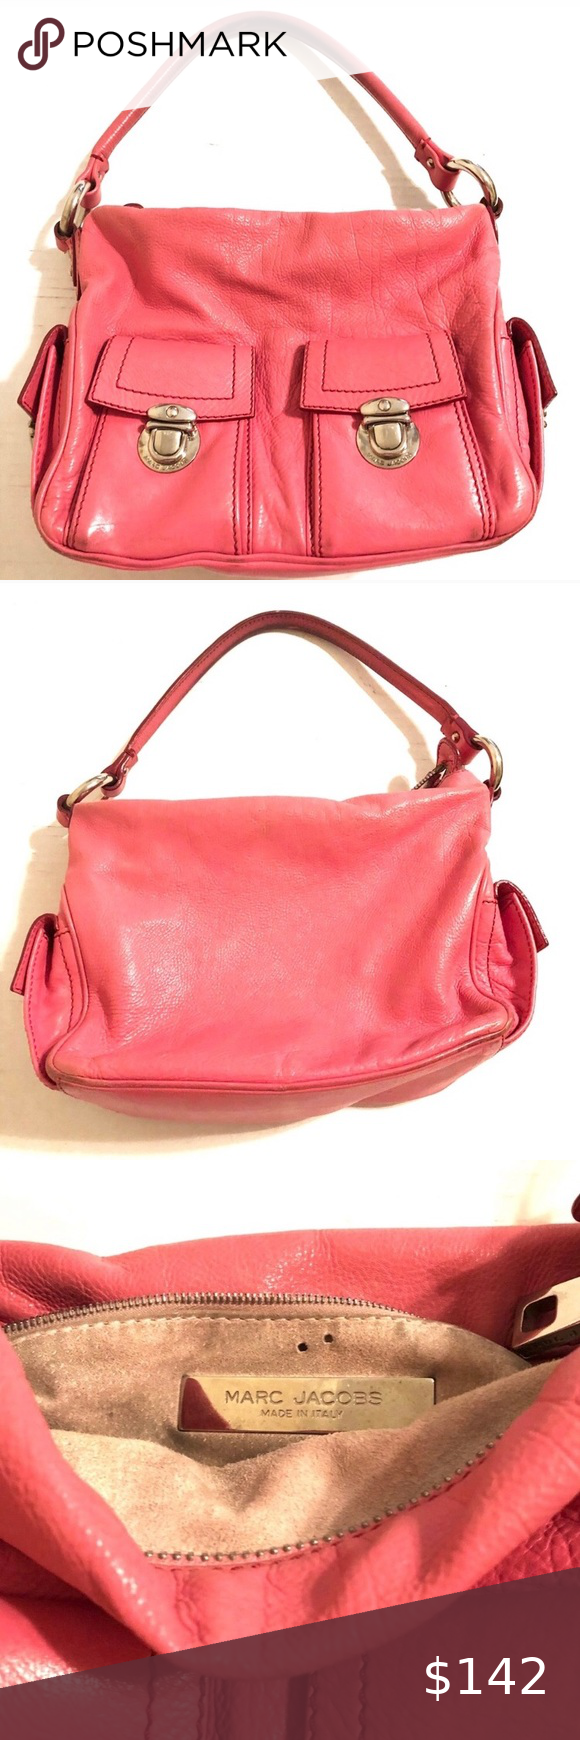 Marc Jacobs Vintage Handbag Authentic 2 Of 2 In 2020 Marc Jacobs Bag Vintage Handbags Handbag